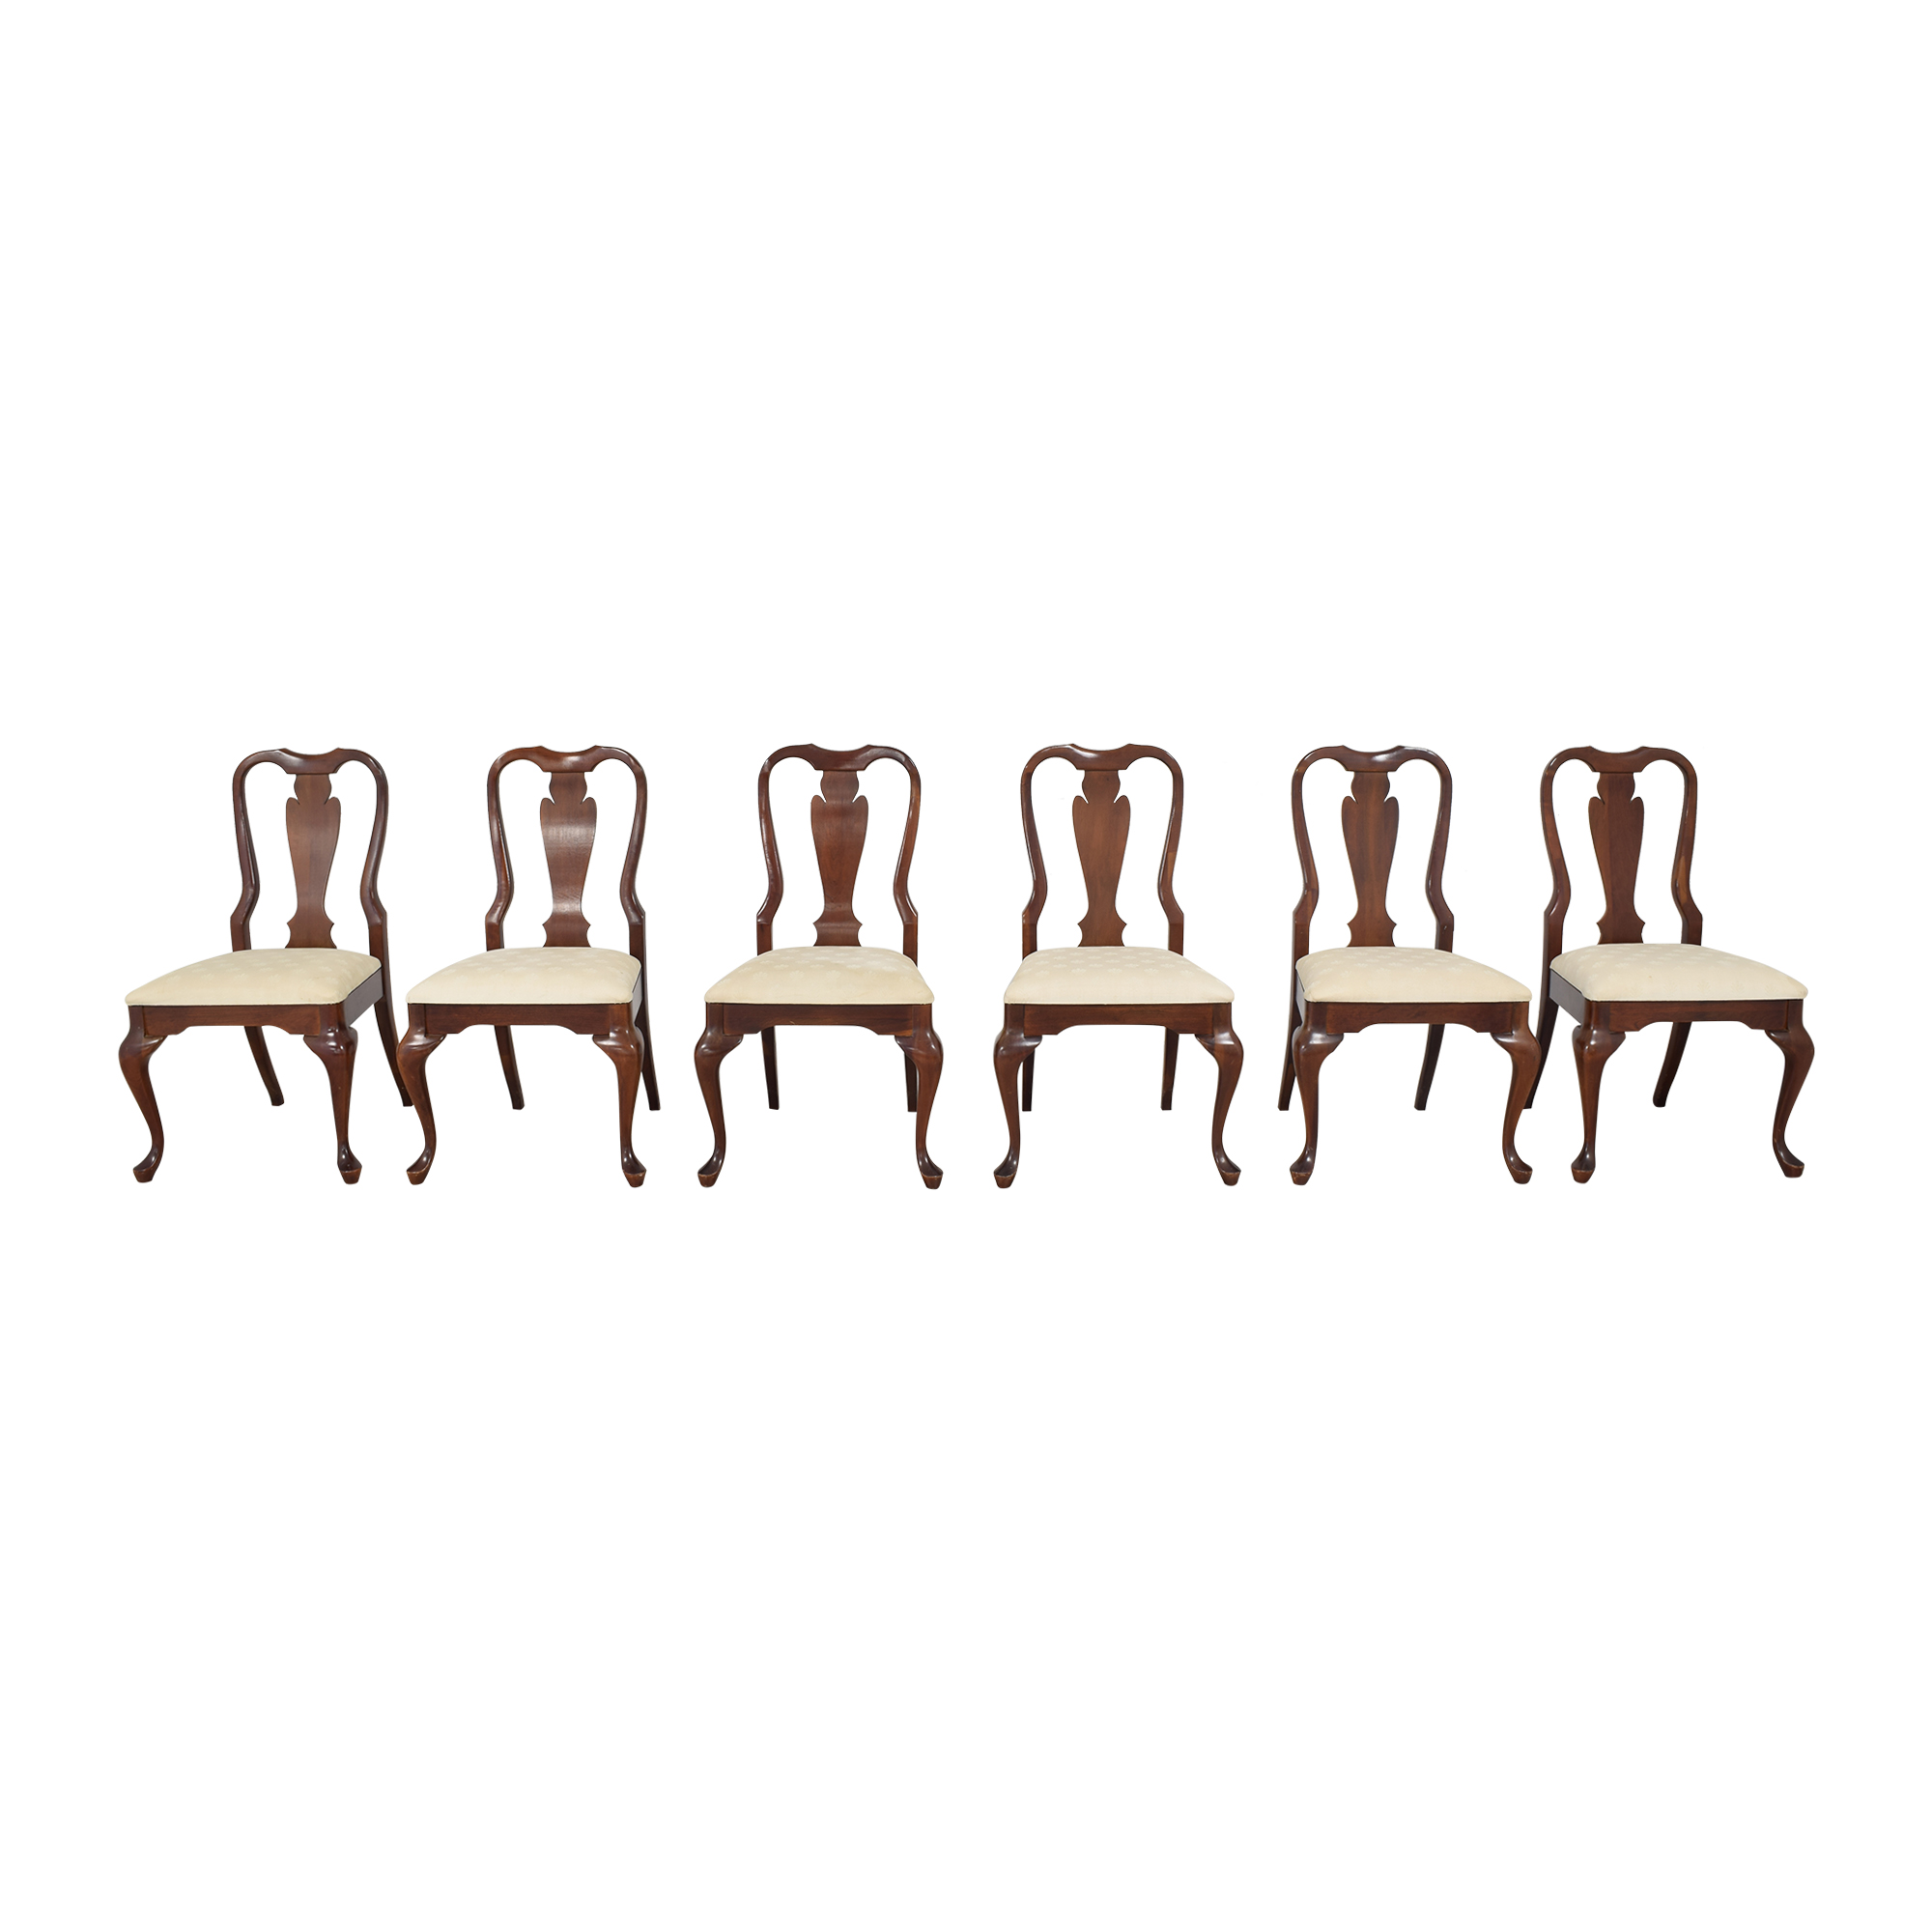 Cresent Furniture Cresent Furniture Queen Anne Dining Side Chairs for sale